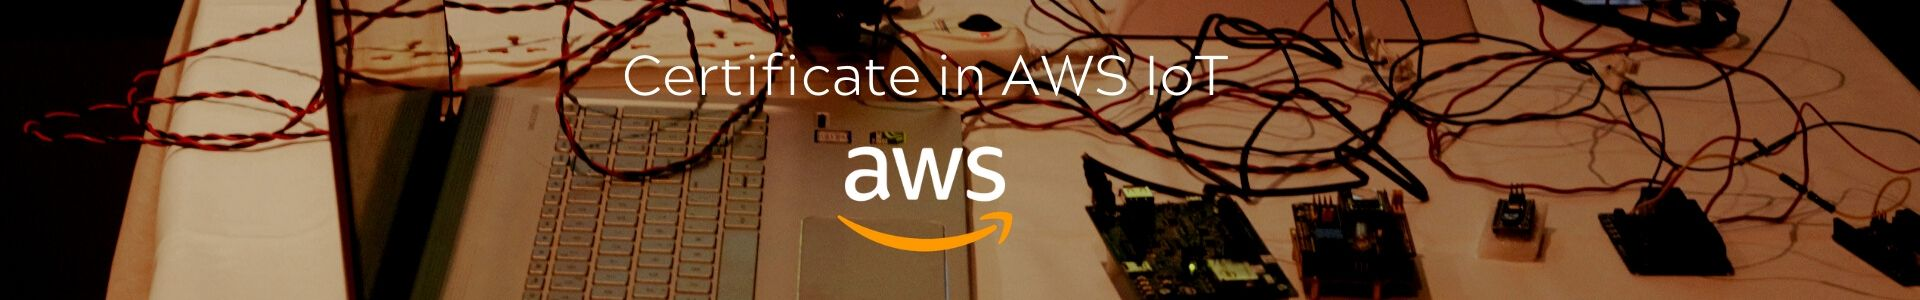 Certificate in AWS IoT